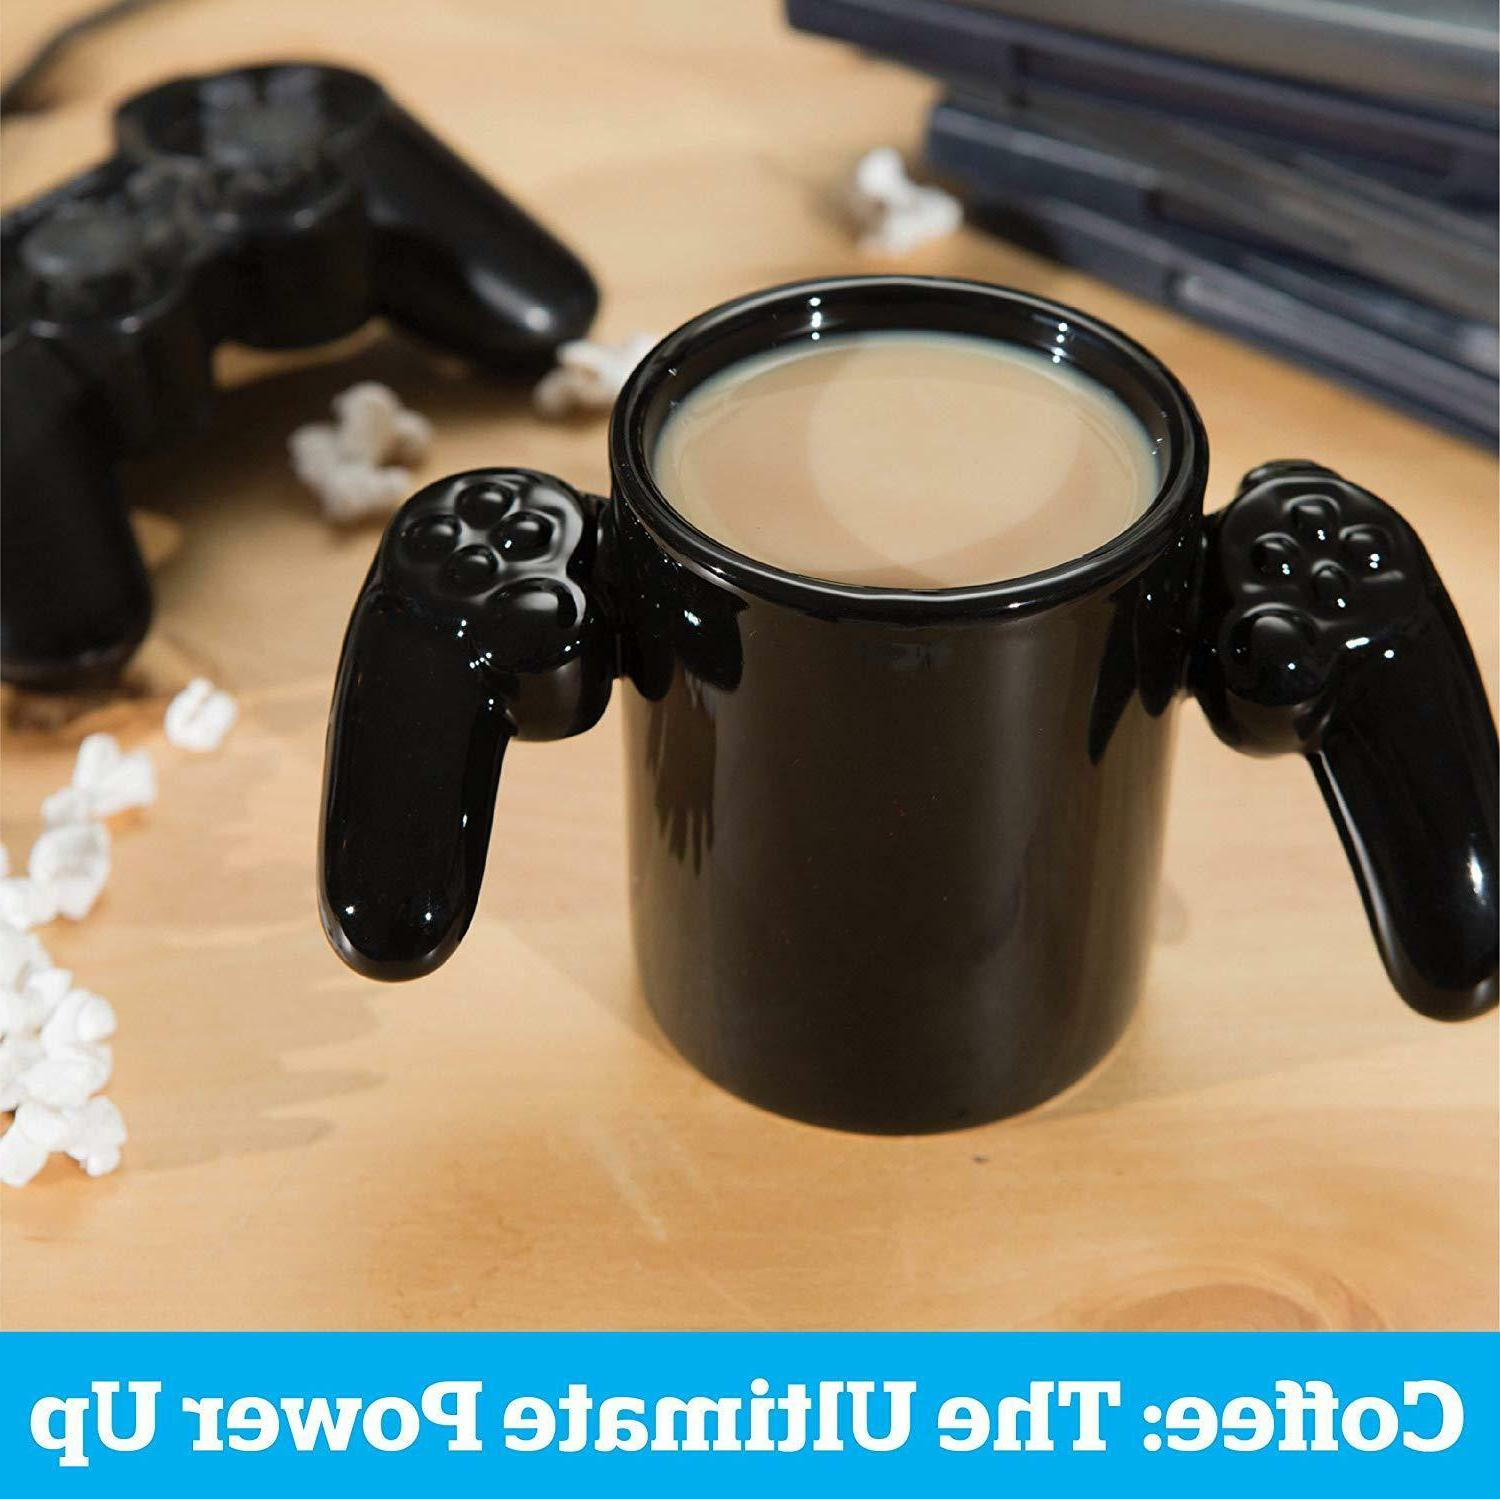 New Over Video Controller Cup Black Ceramic Novelty Gamer Gift